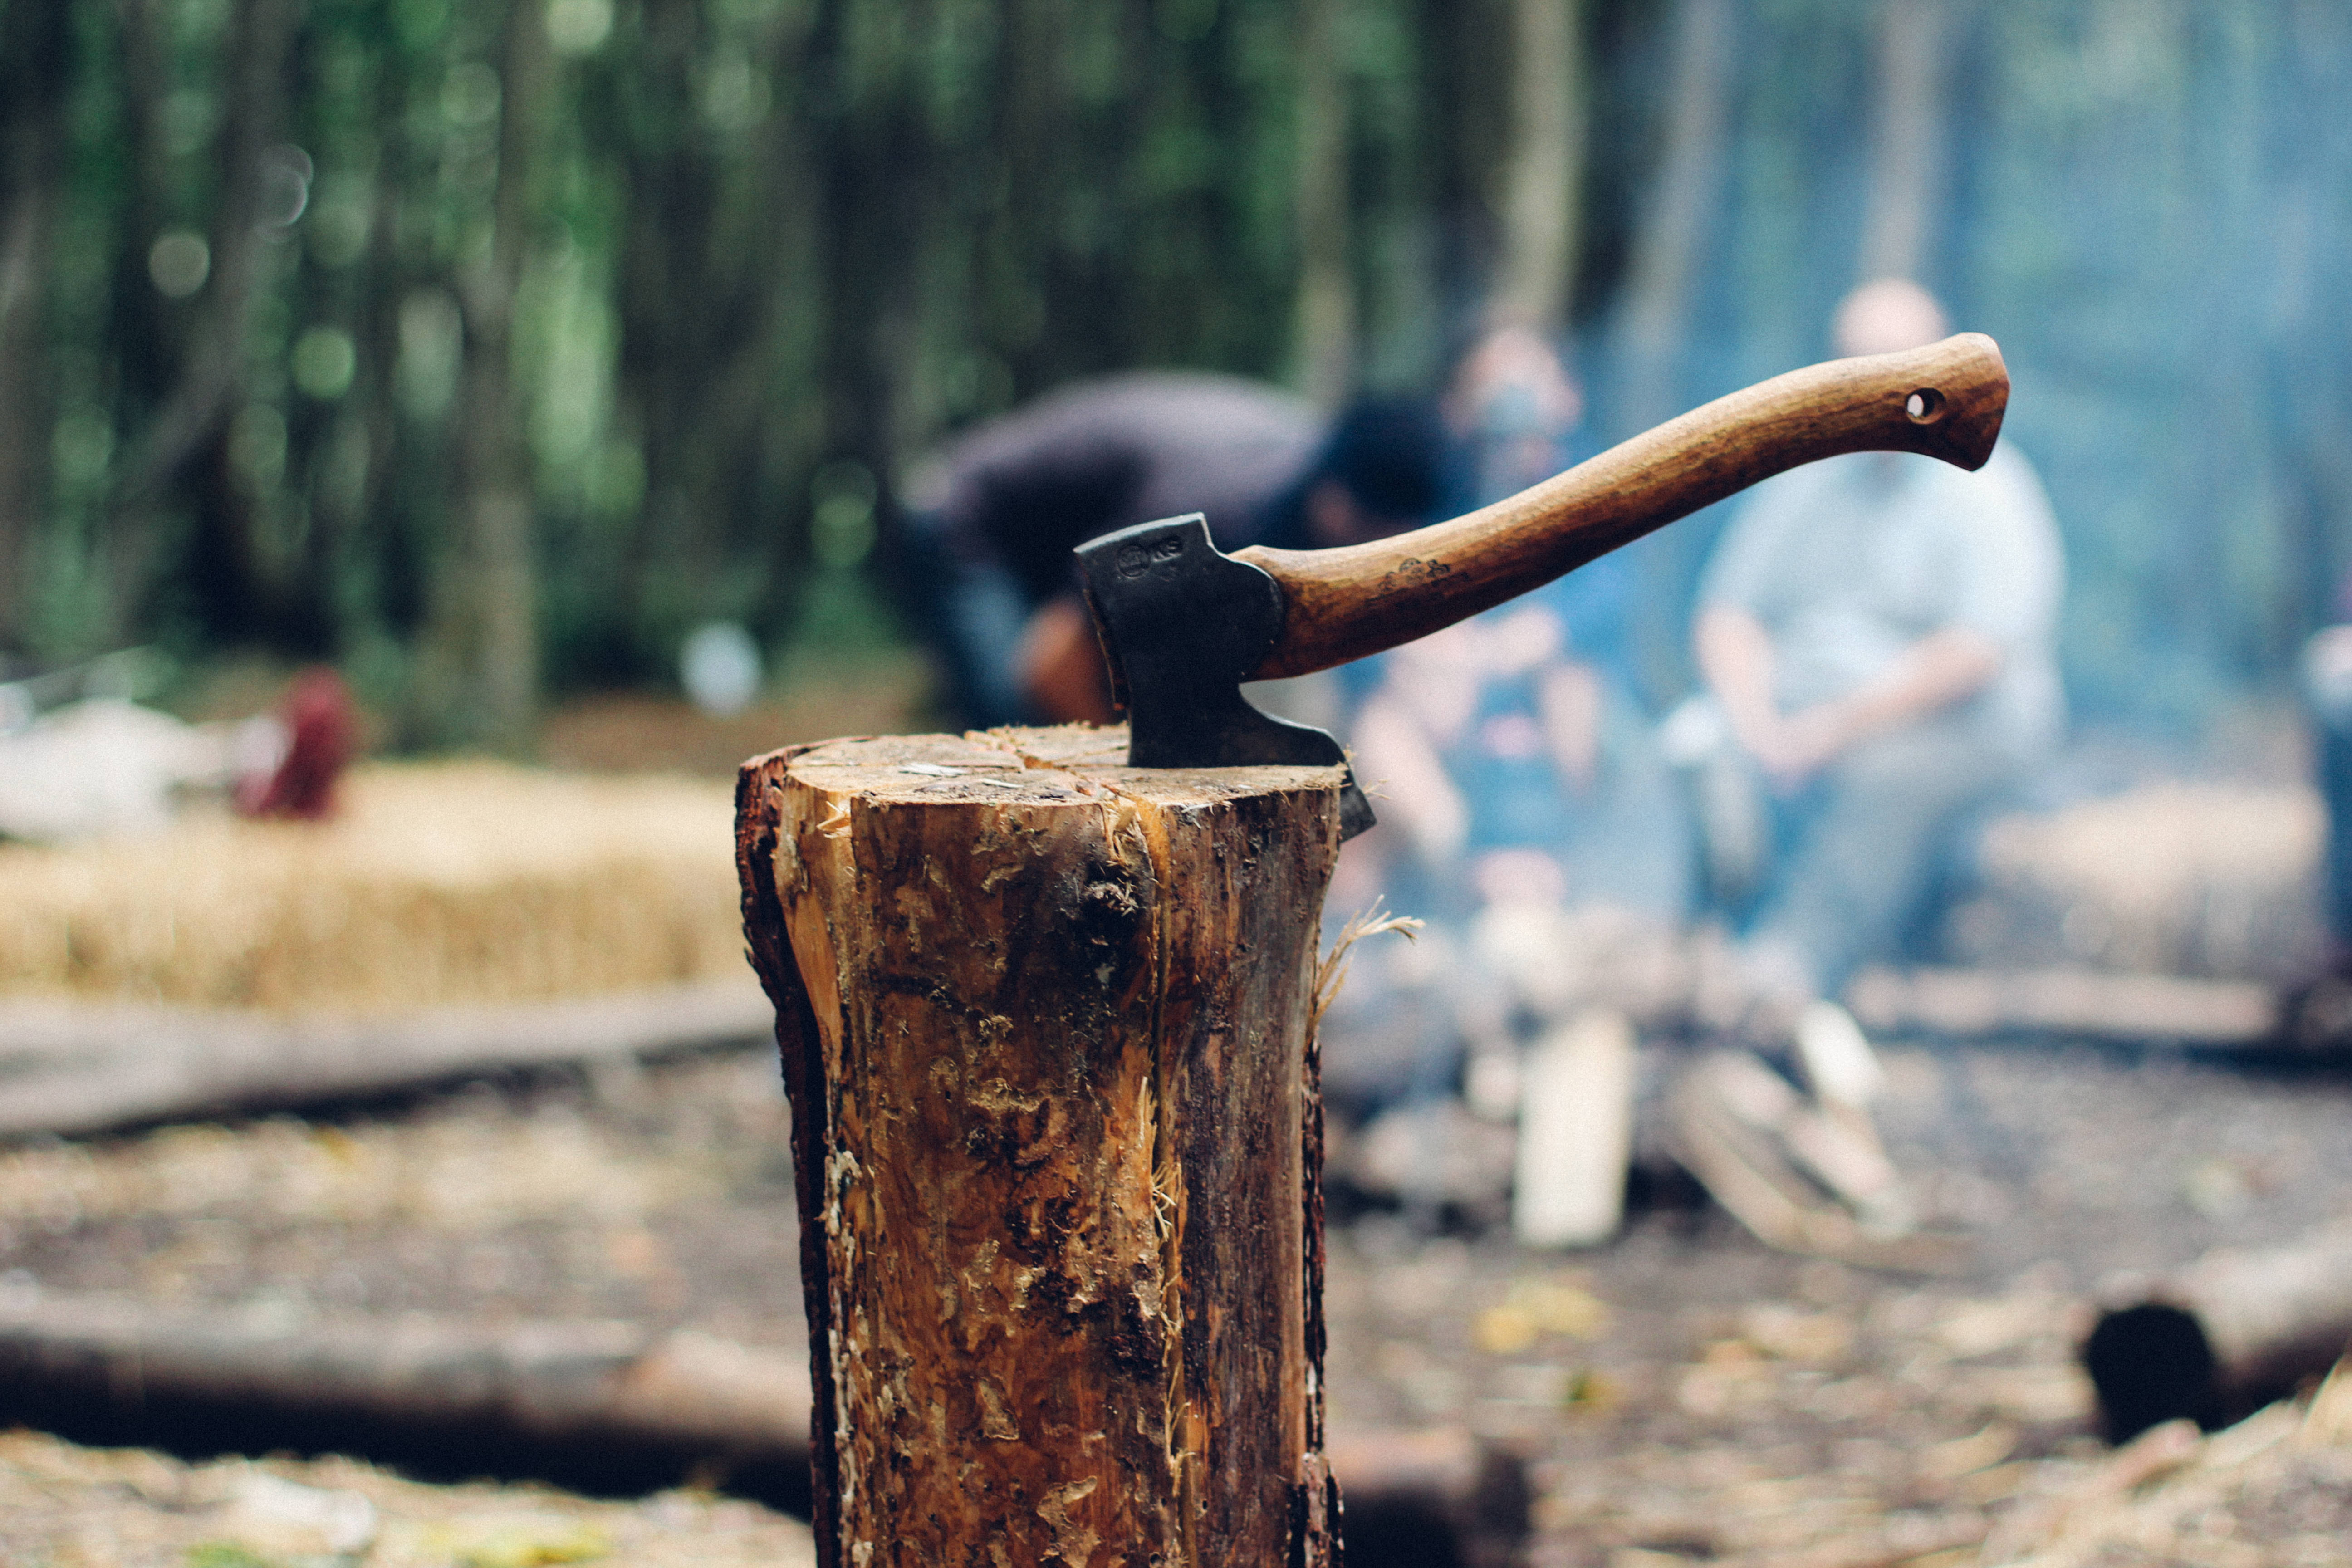 Axe-stuck-in-log-while-chopping-wood-camping